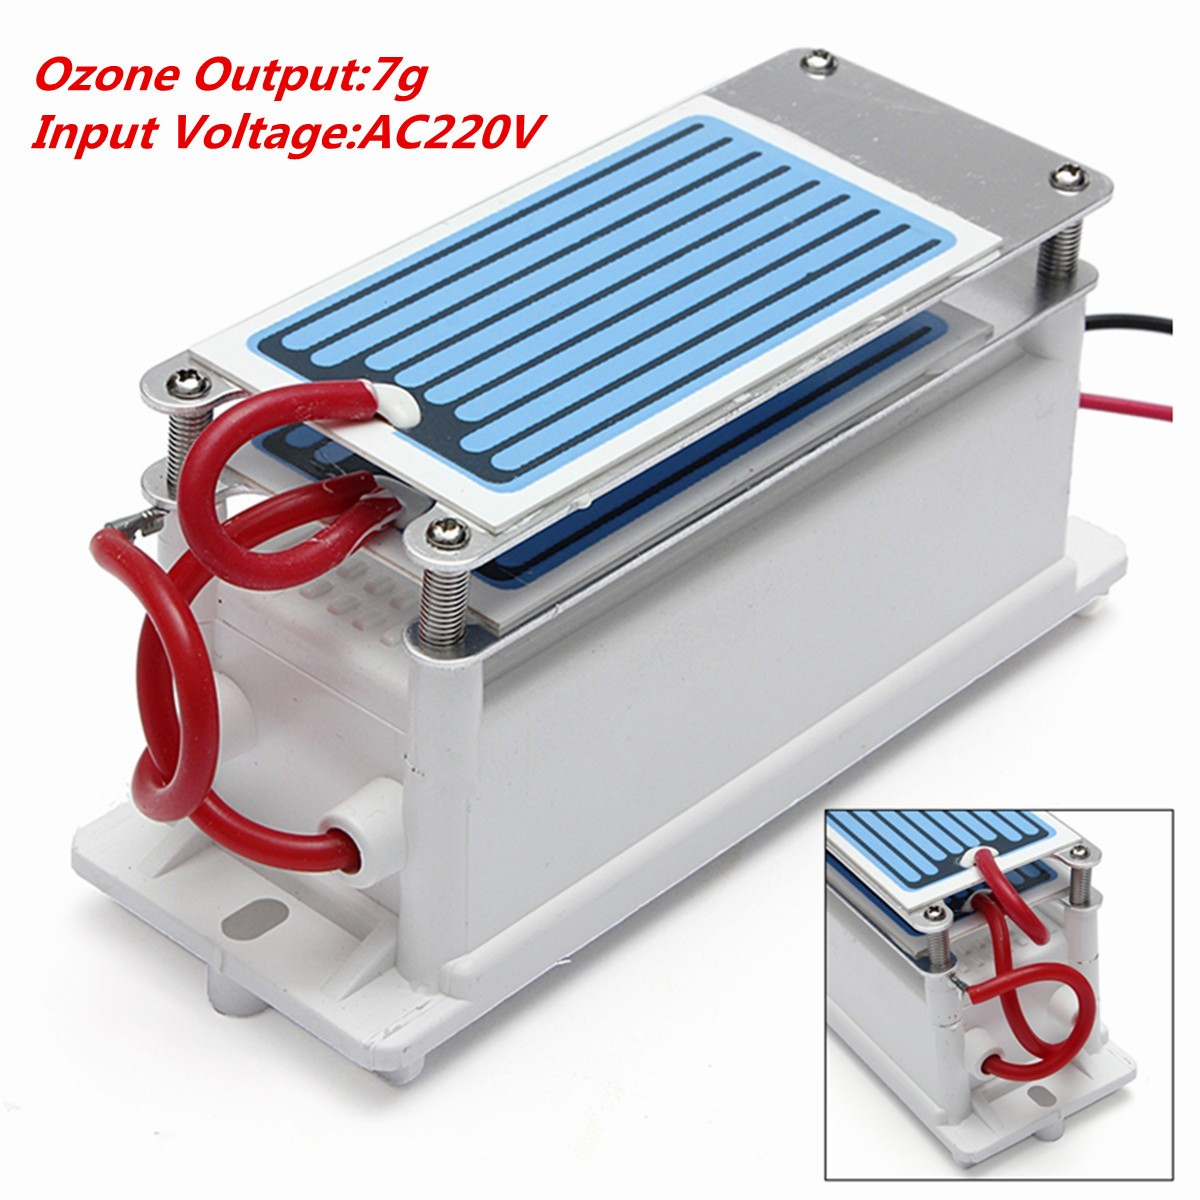 New Ozonizer Diy 7g Ozone Generator Alternator 220v Eu Plug 3g Tube Circuit Board Hr 3000mg H Water Air Cleaner With Double Sheet Ceramic Plate